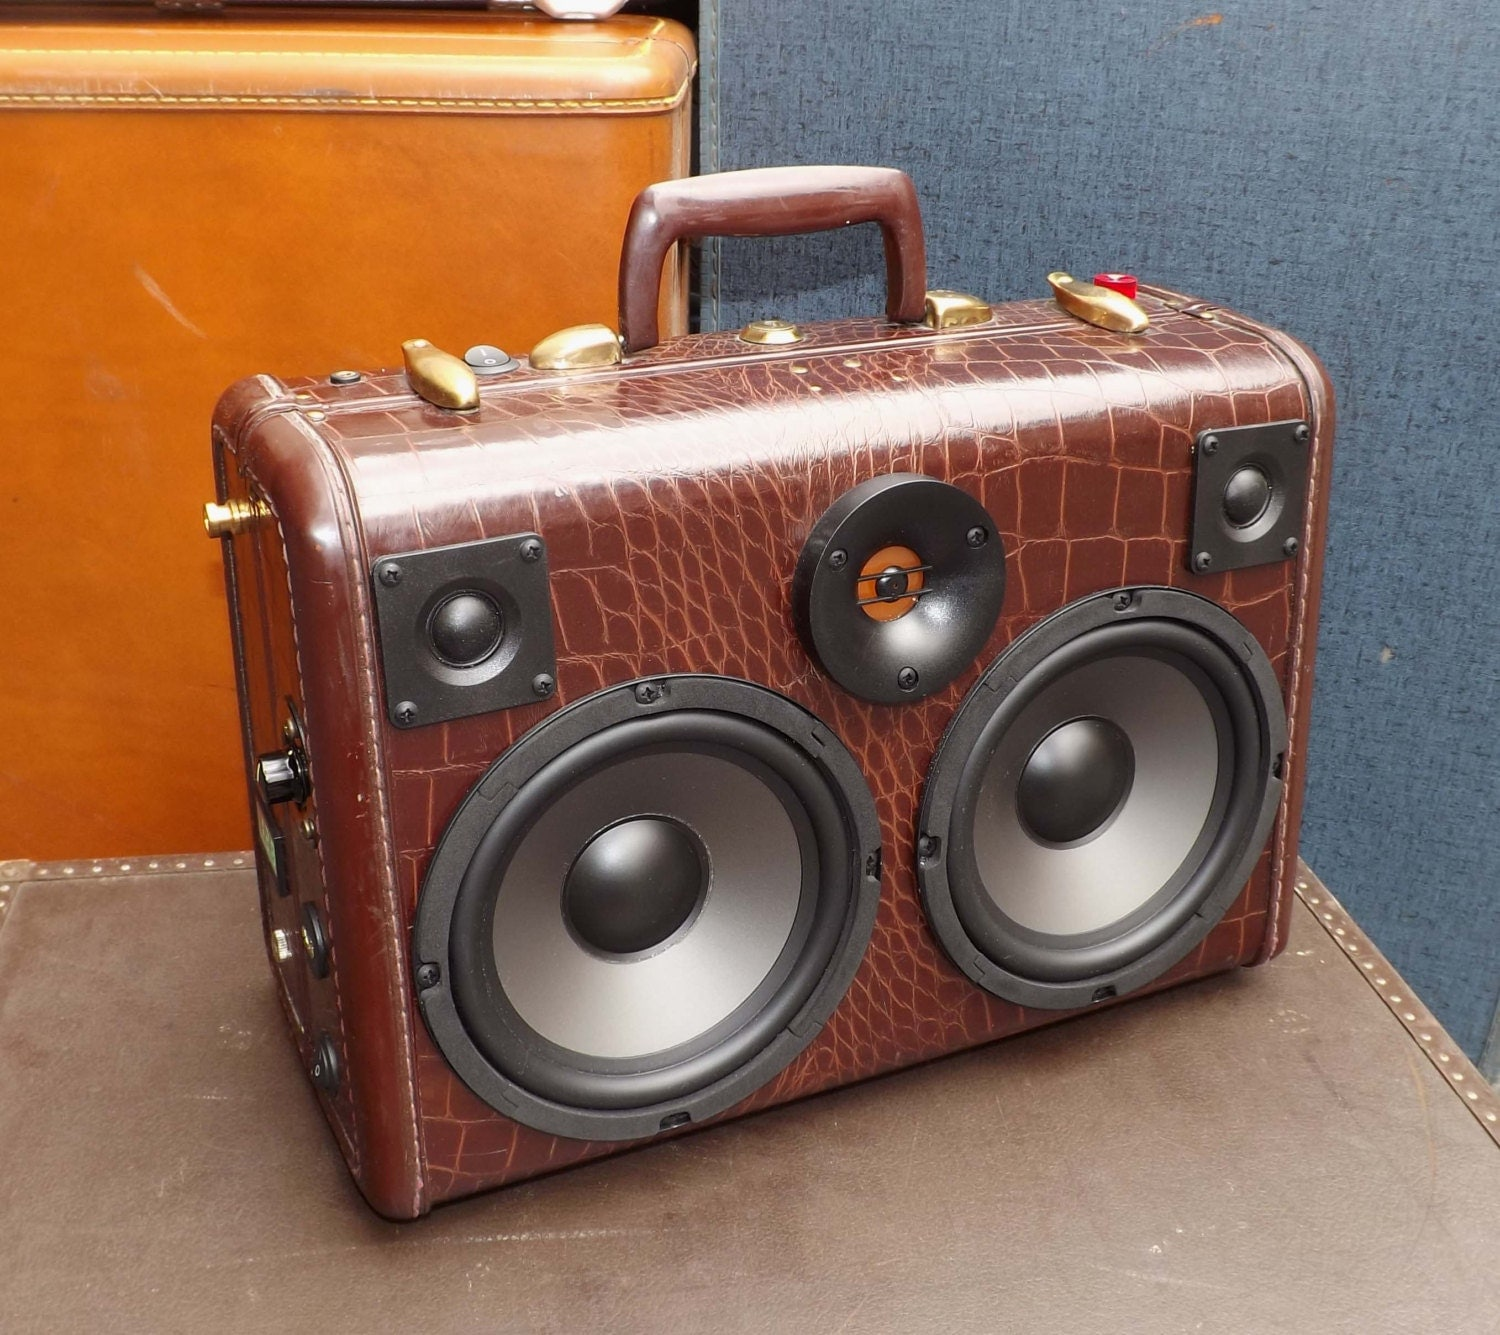 SOLD BLUETOOTH Vintage Suitcase Boombox Rechargeable Battery